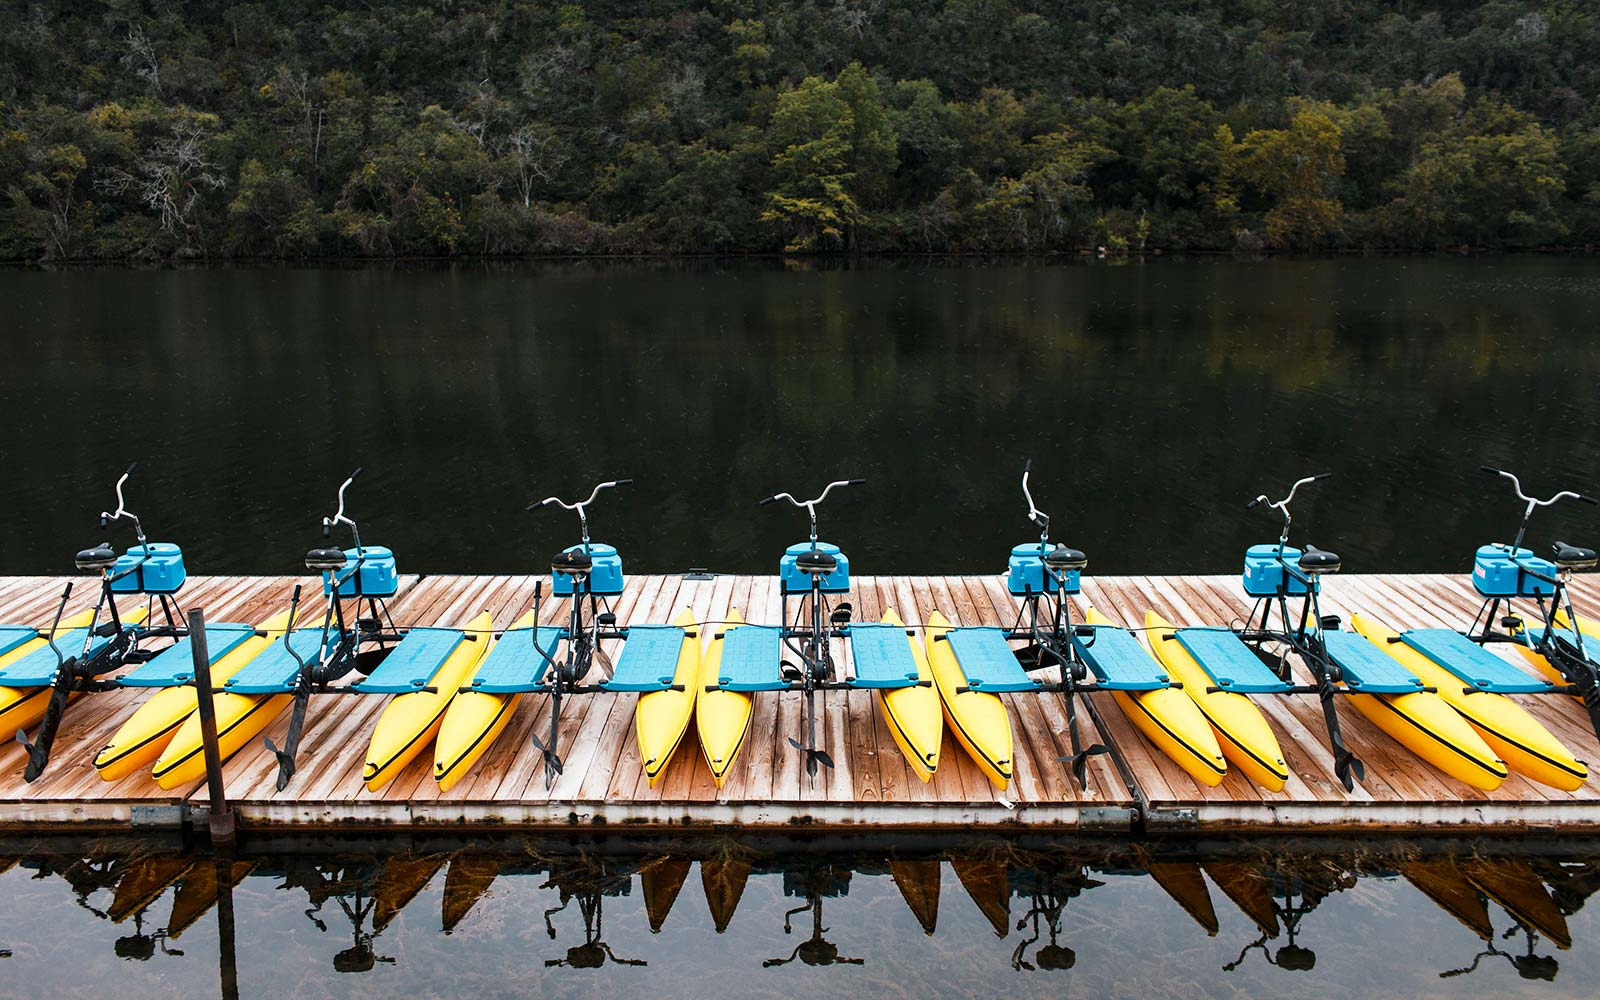 5. Lake Austin Spa Resort, Austin, Texas